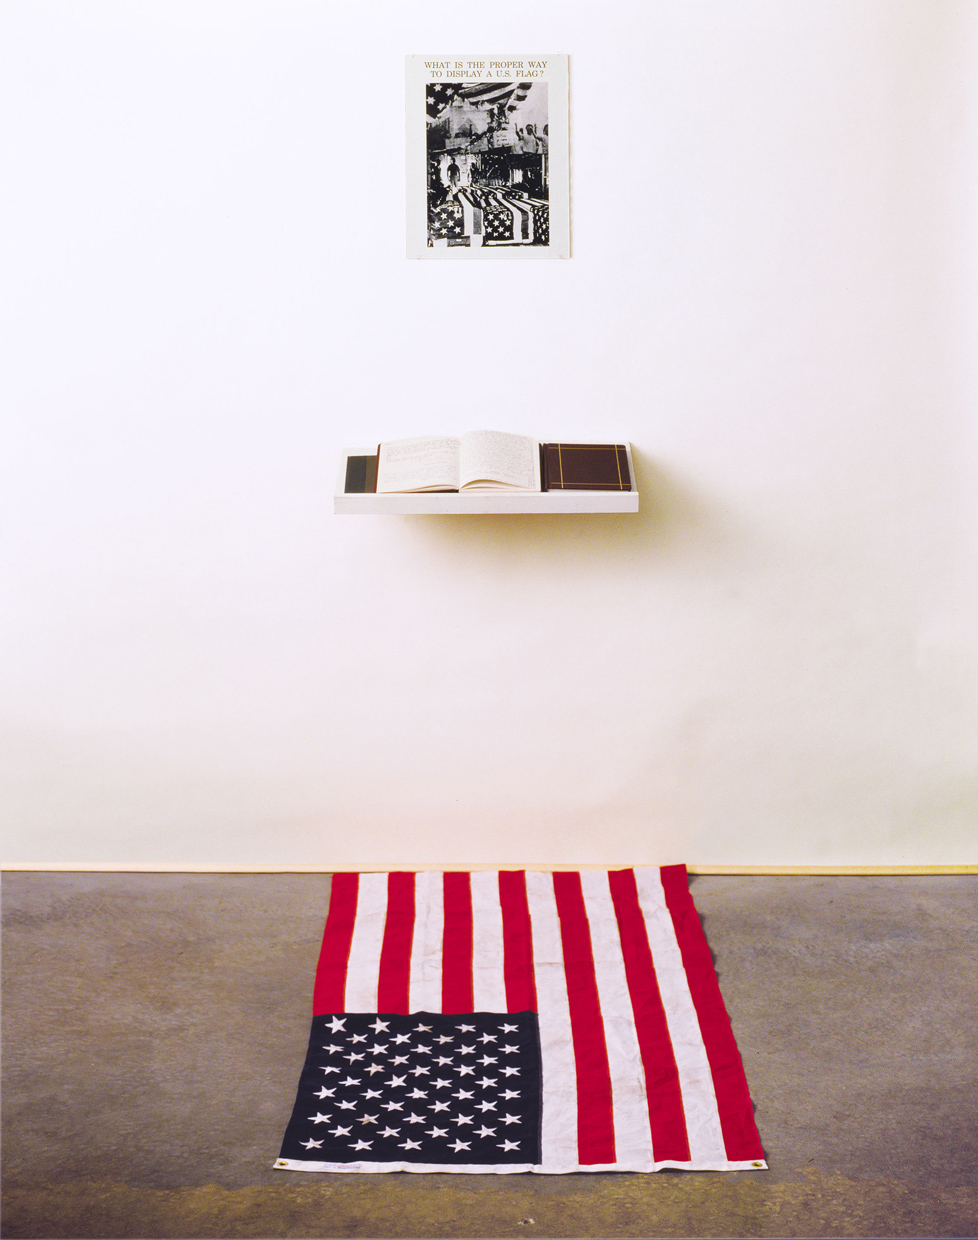 """What is the Proper Way to Display a U.S. Flag?"" Installation: Silver gelatin print, books, pens, shelf, active audience, US flag, 80"" x 28"" x 12"", 1988."